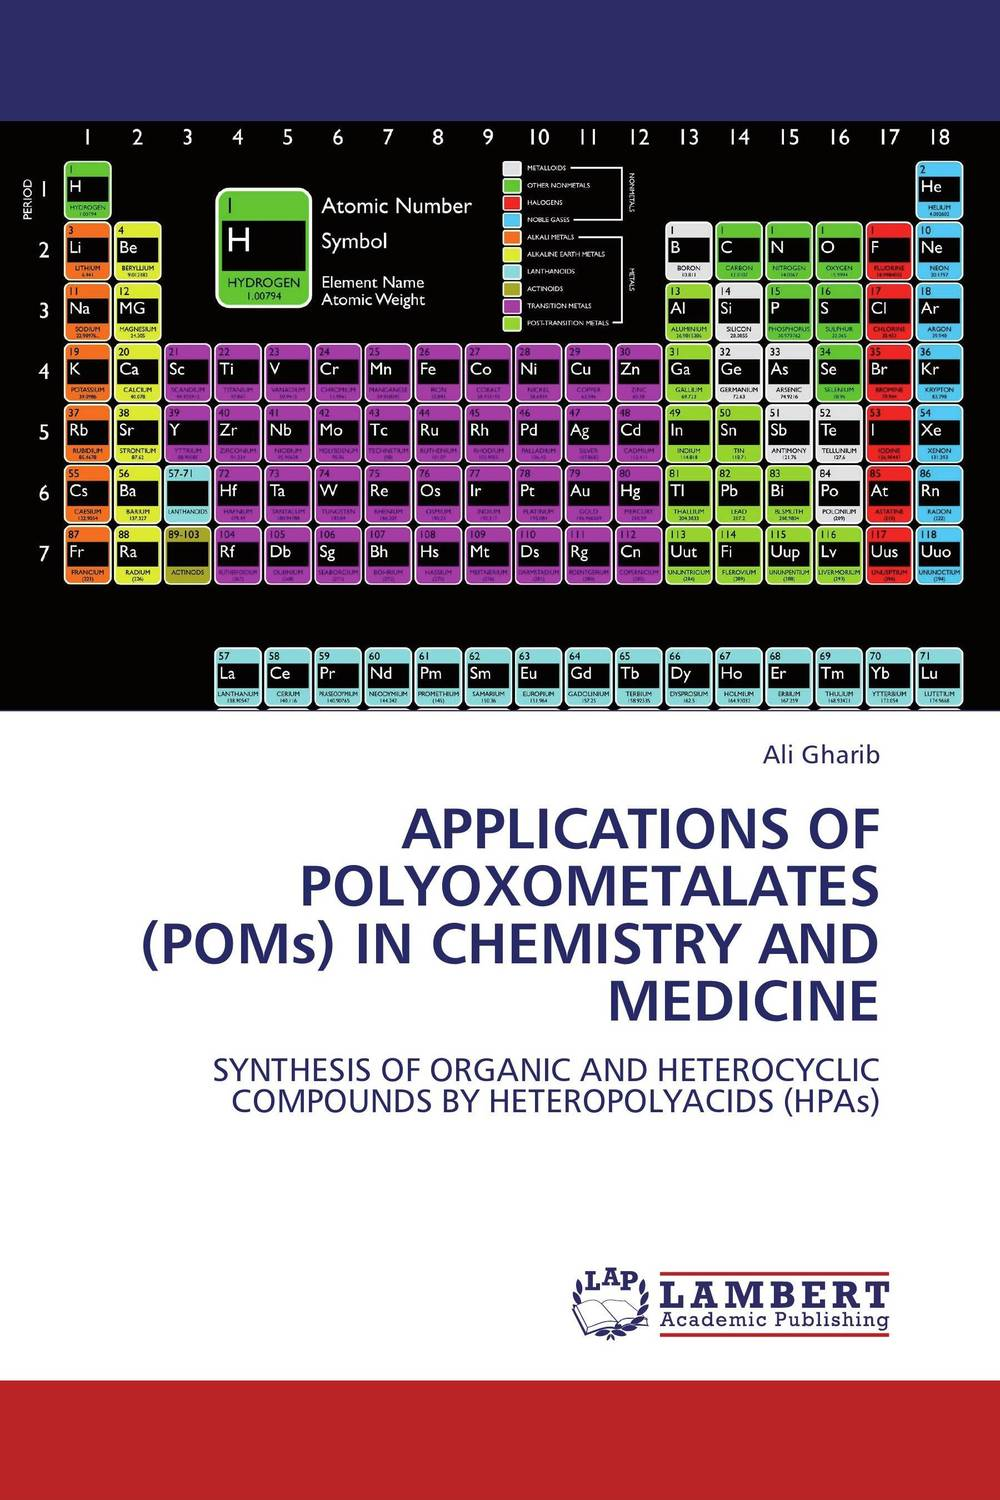 APPLICATIONS OF POLYOXOMETALATES (POMs) IN CHEMISTRY AND MEDICINE